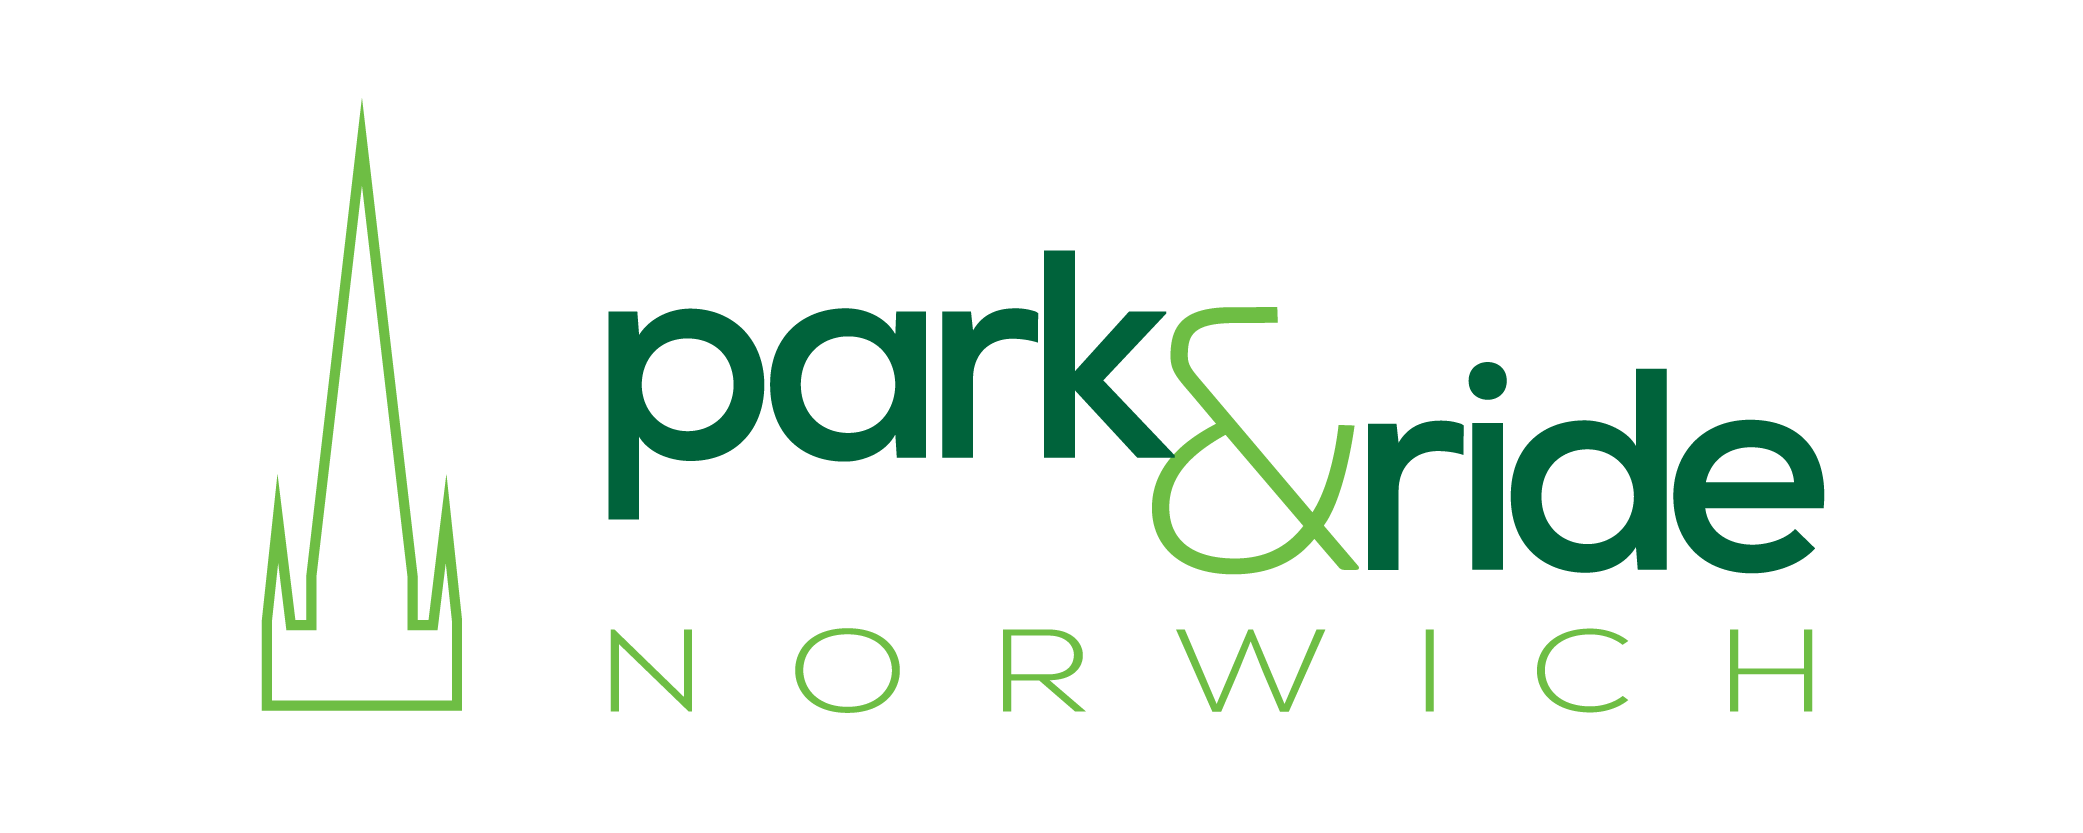 Image of Norwich Park and Ride